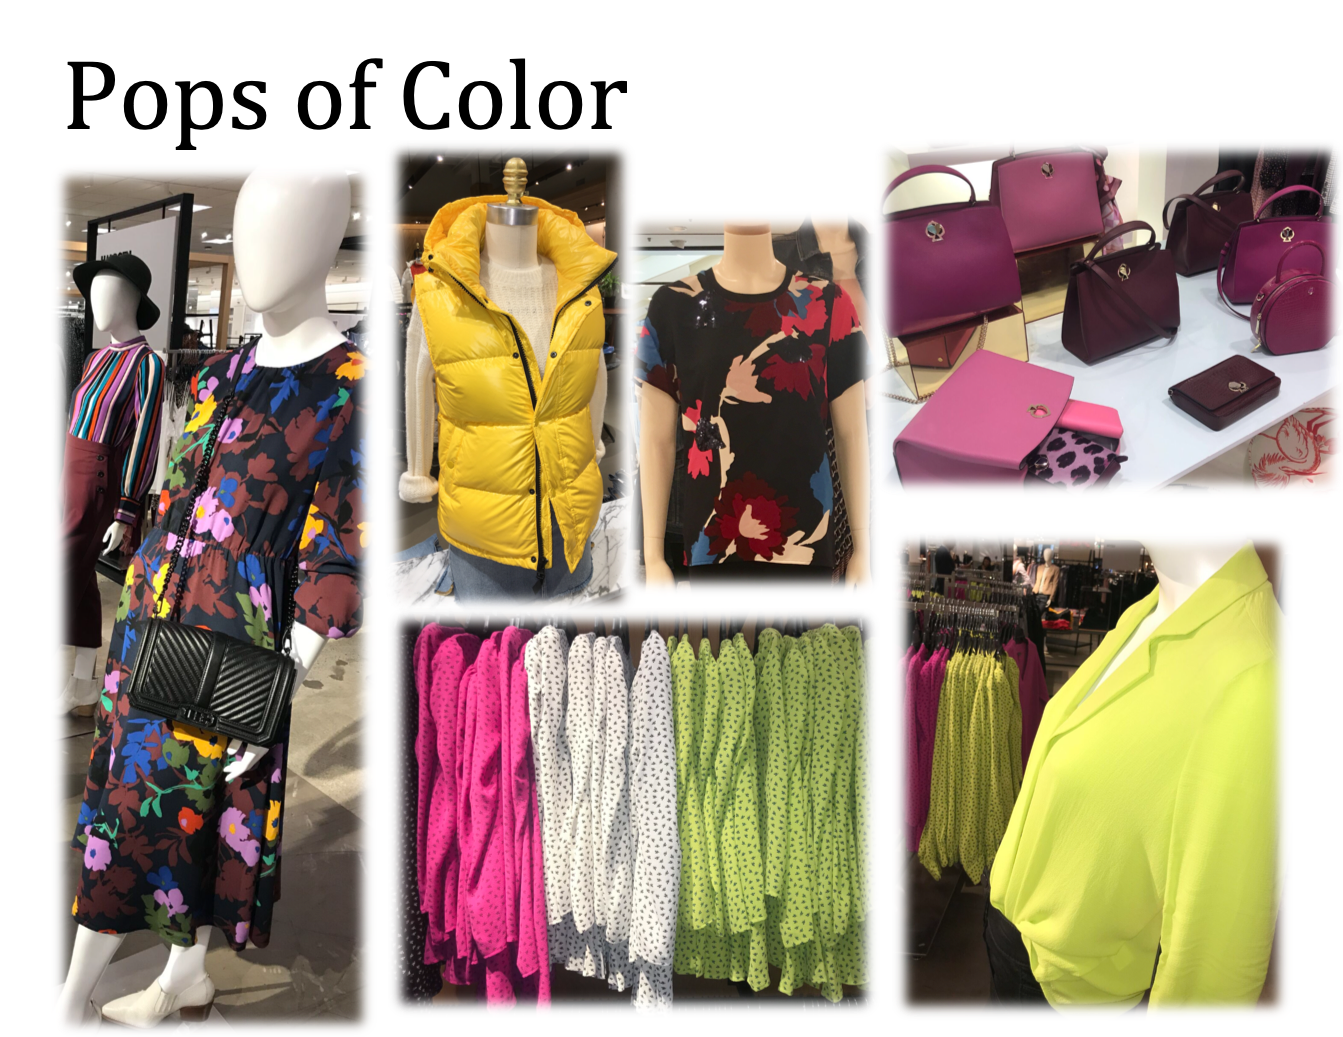 The darker months of autumn and winter can feel long, why not boost the season with some serious color options, why not highlighter yellow or pink!